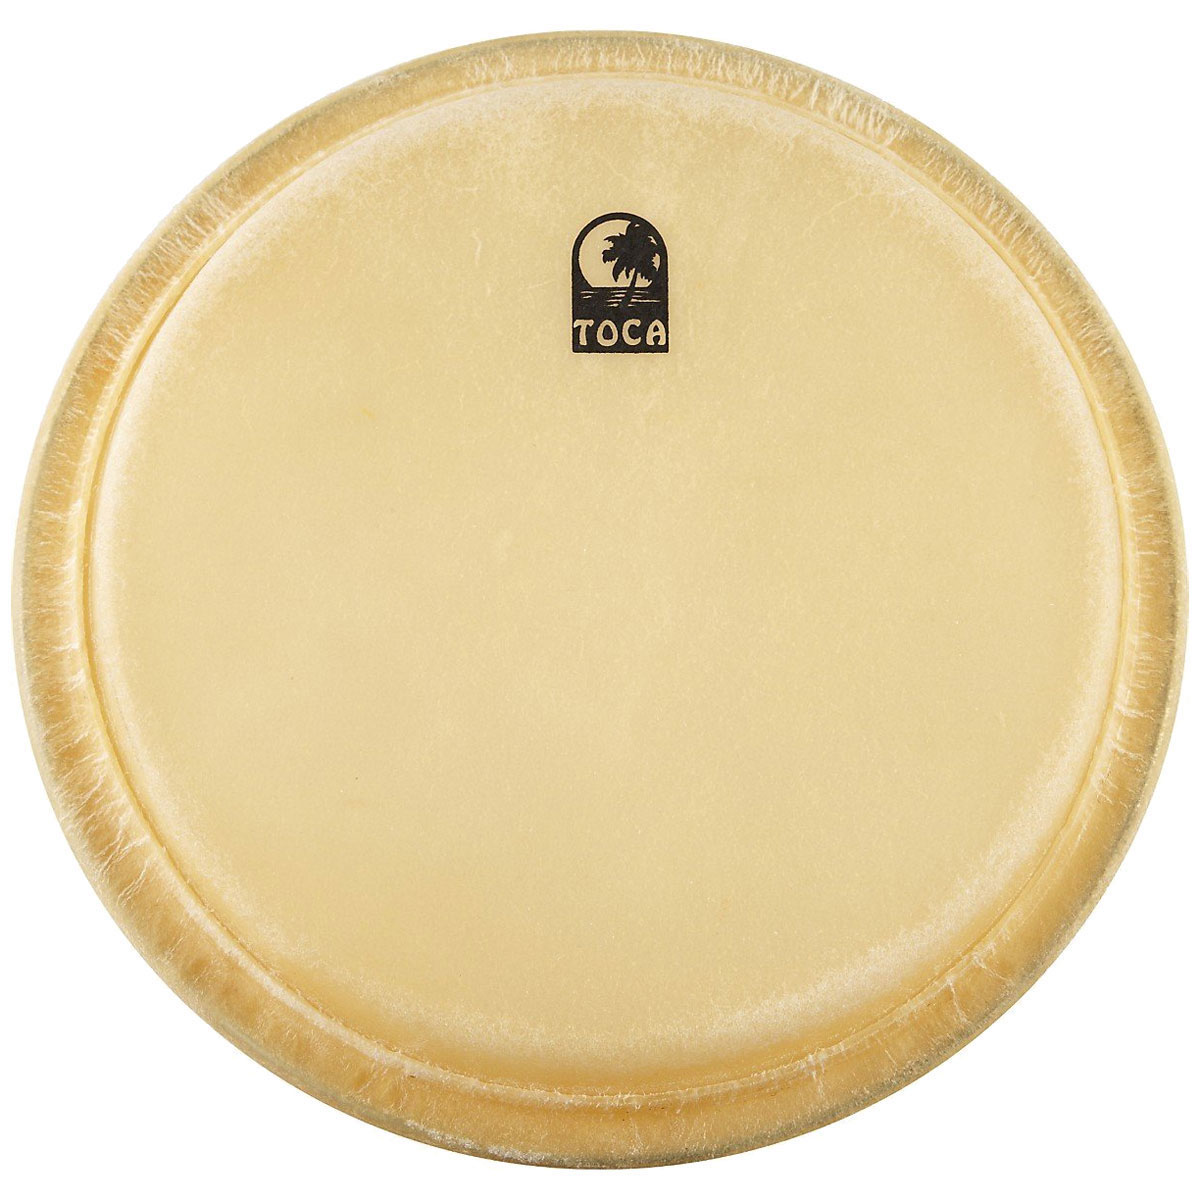 "Toca 12.5"" Elite Pro Wood Rawhide Conga Drum Head"